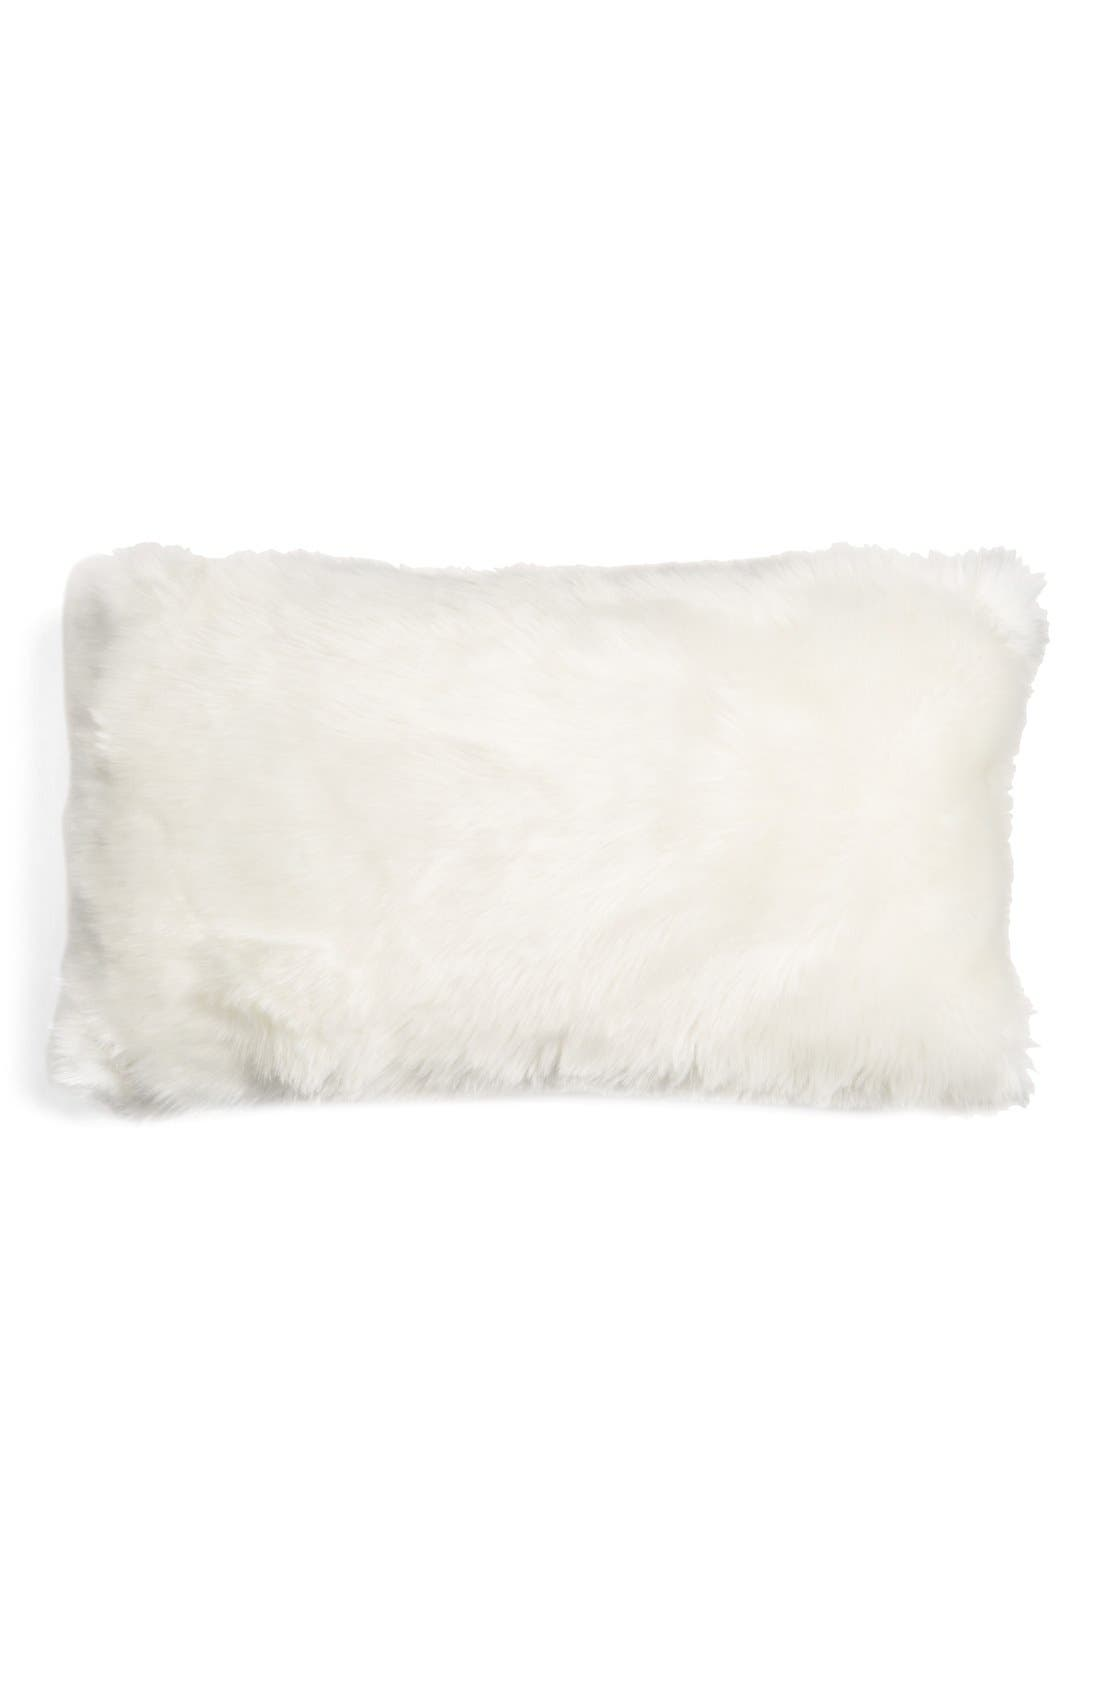 Alternate Image 1 Selected - Levtex 'Taza' Pillow